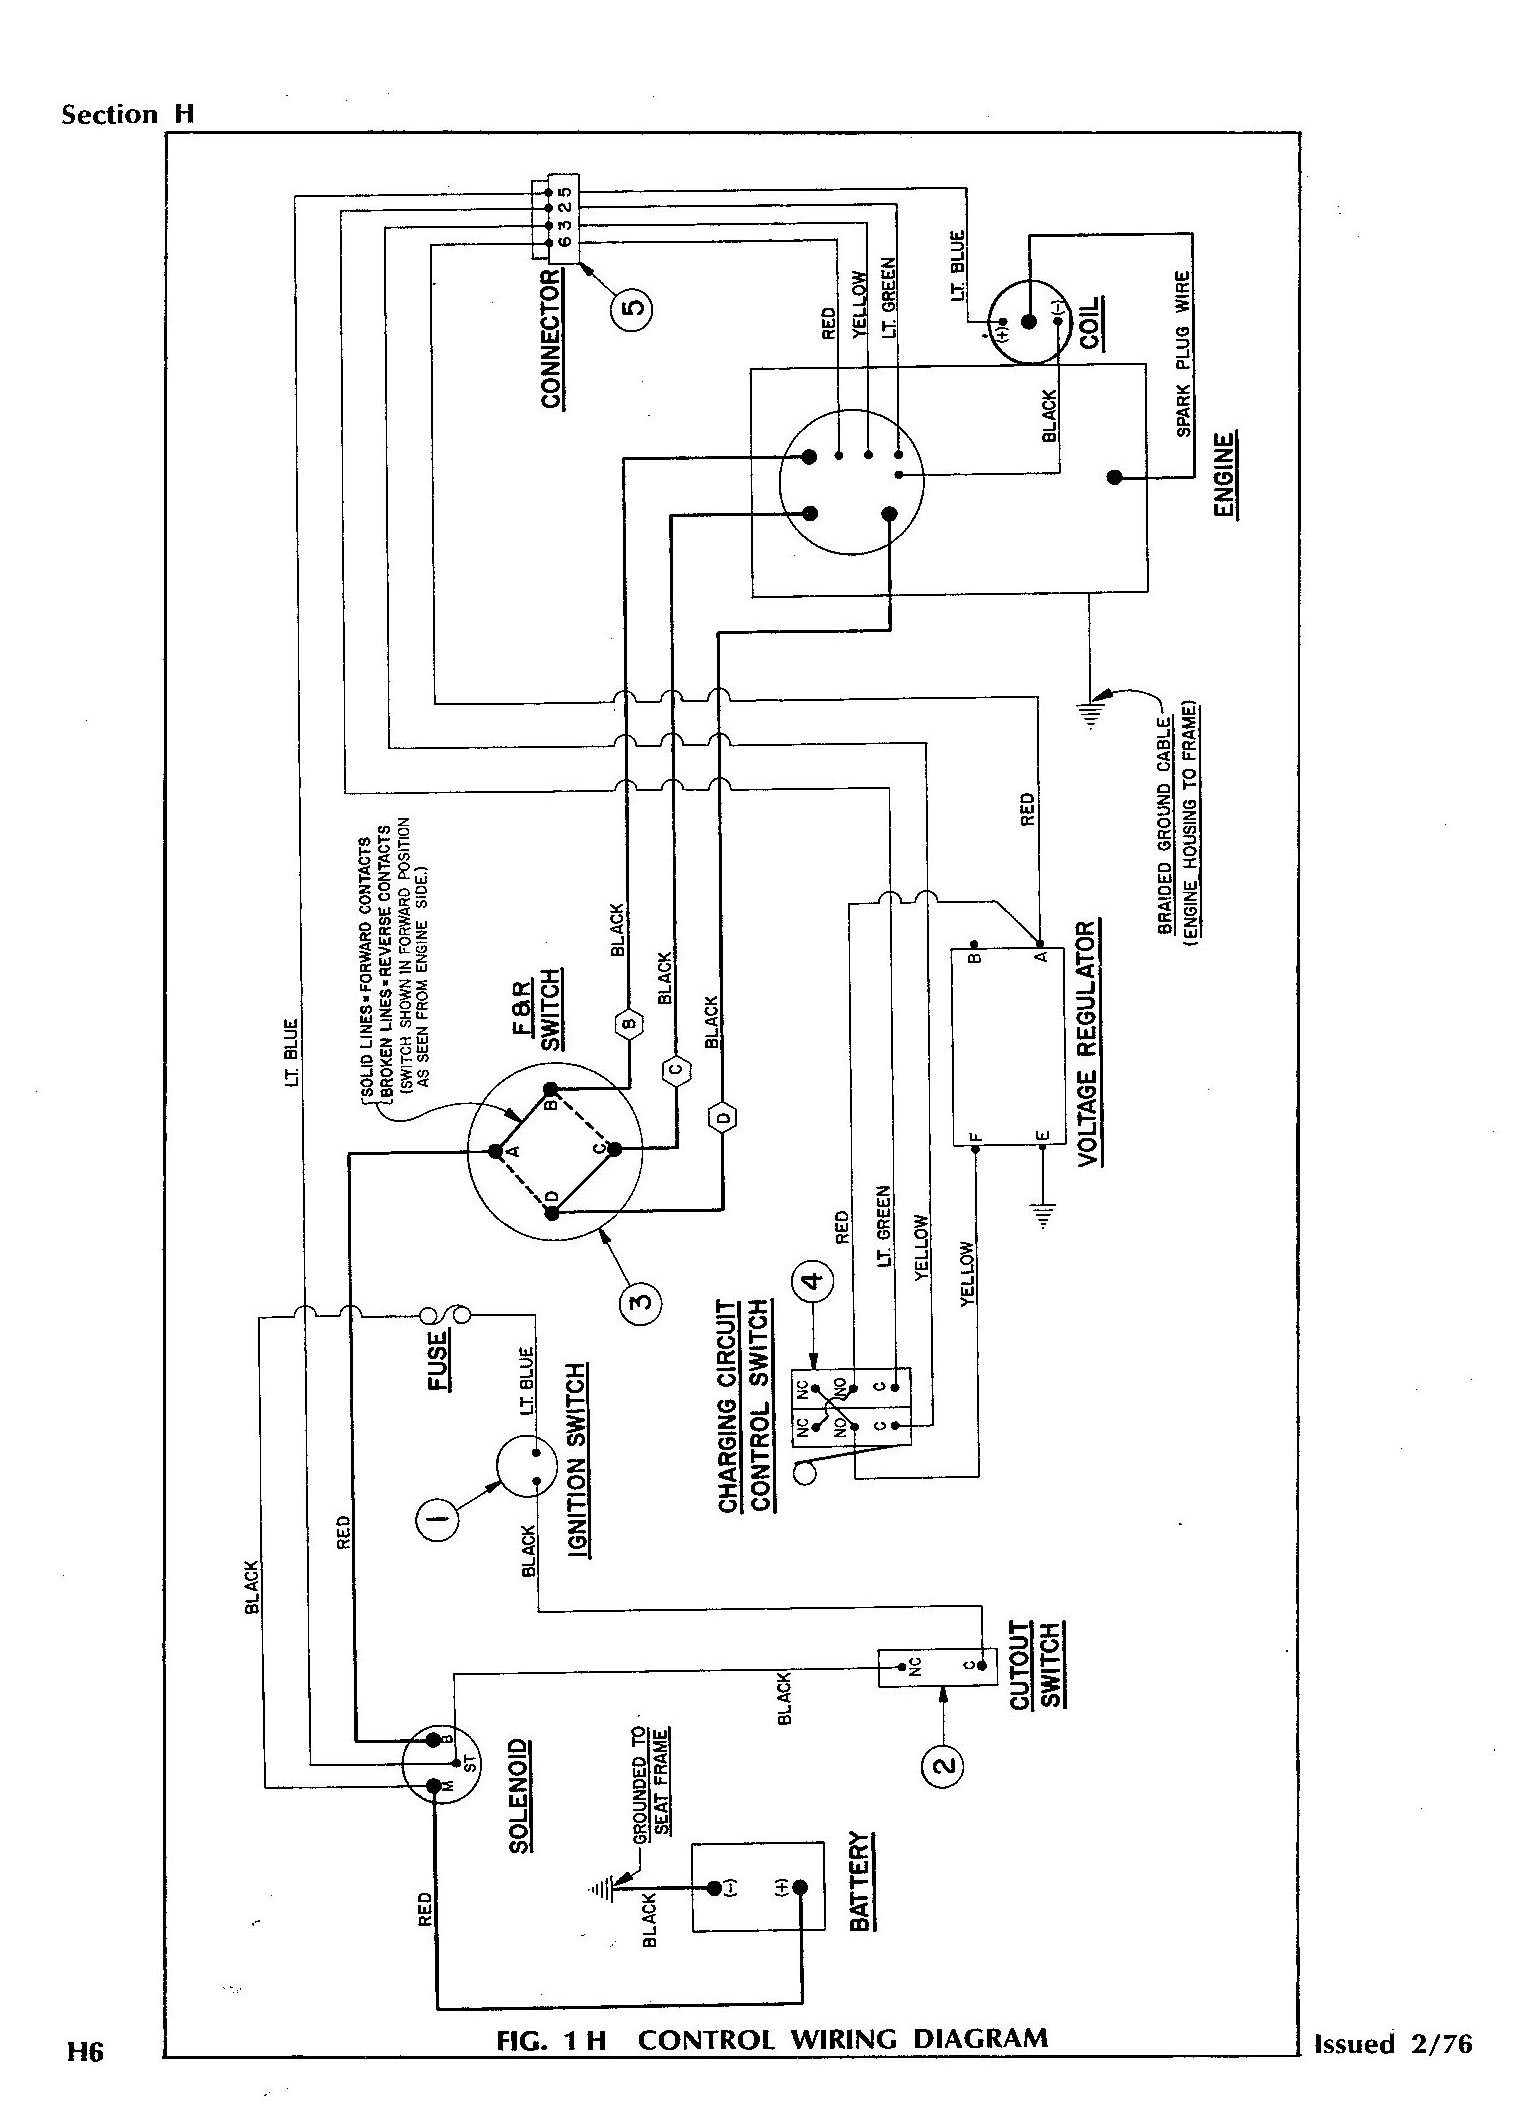 harley davidson alternator wiring diagram - data wiring diagram  huge-agree-a - huge-agree-a.vivarelliauto.it  vivarelliauto.it